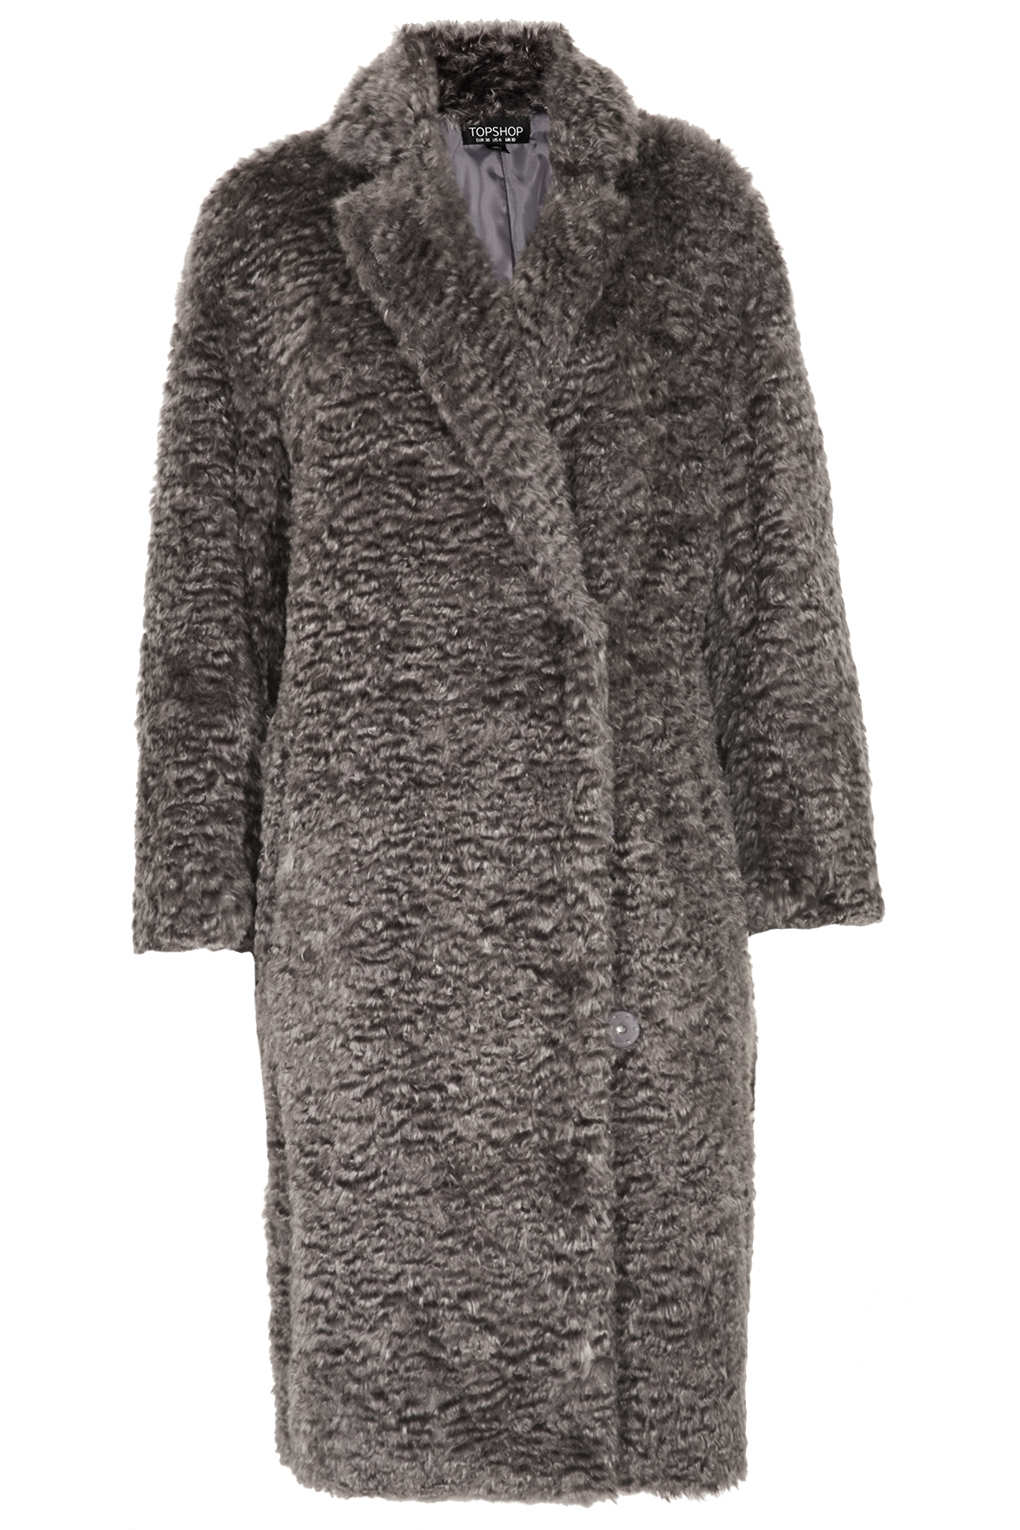 Find great deals on eBay for long faux fur coat. Shop with confidence.